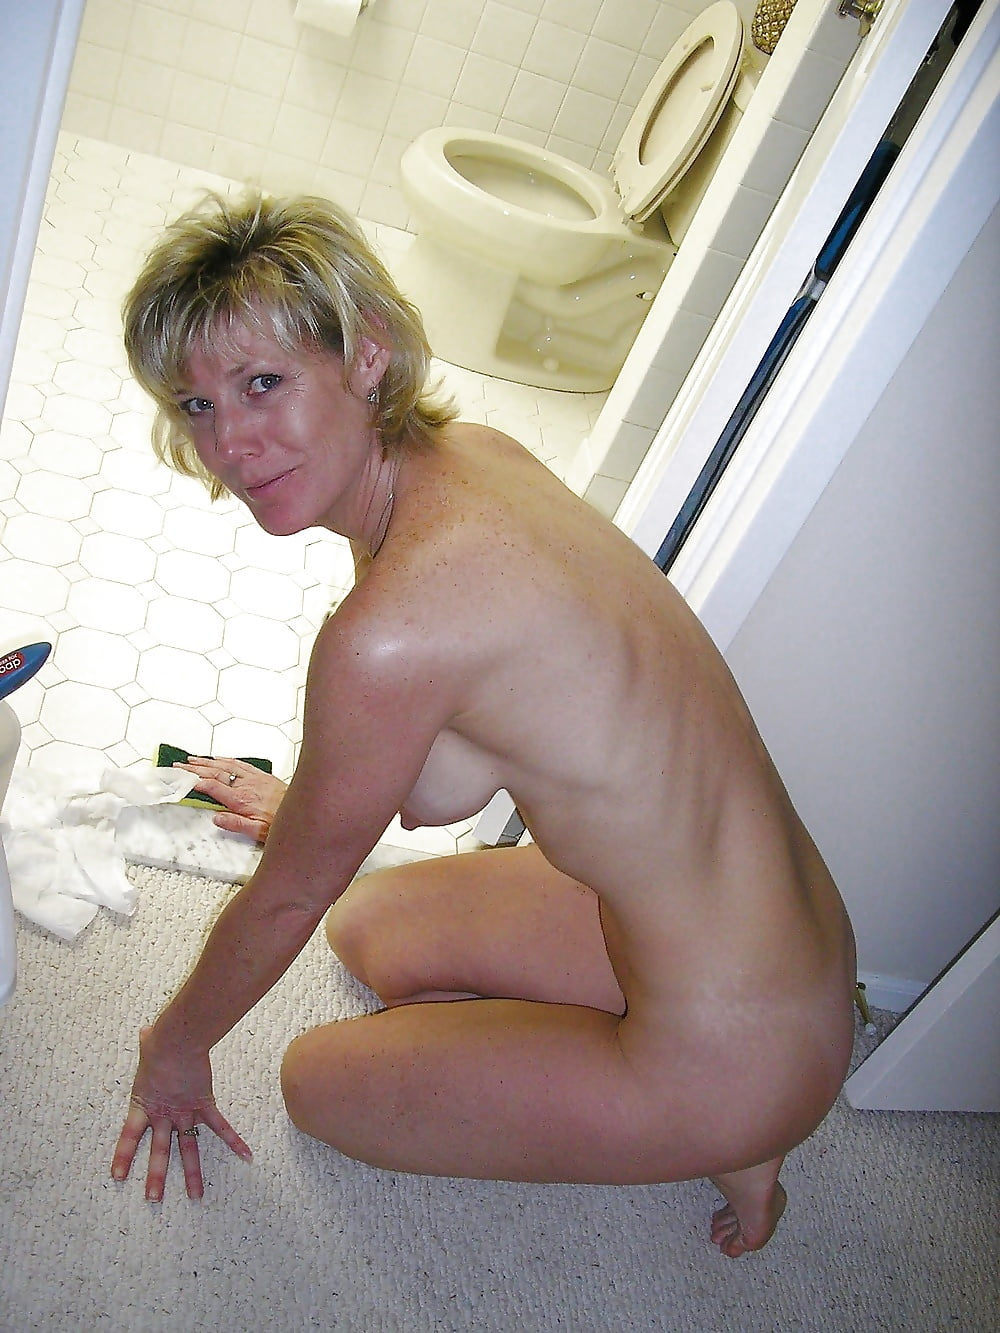 Housework wives nude doing